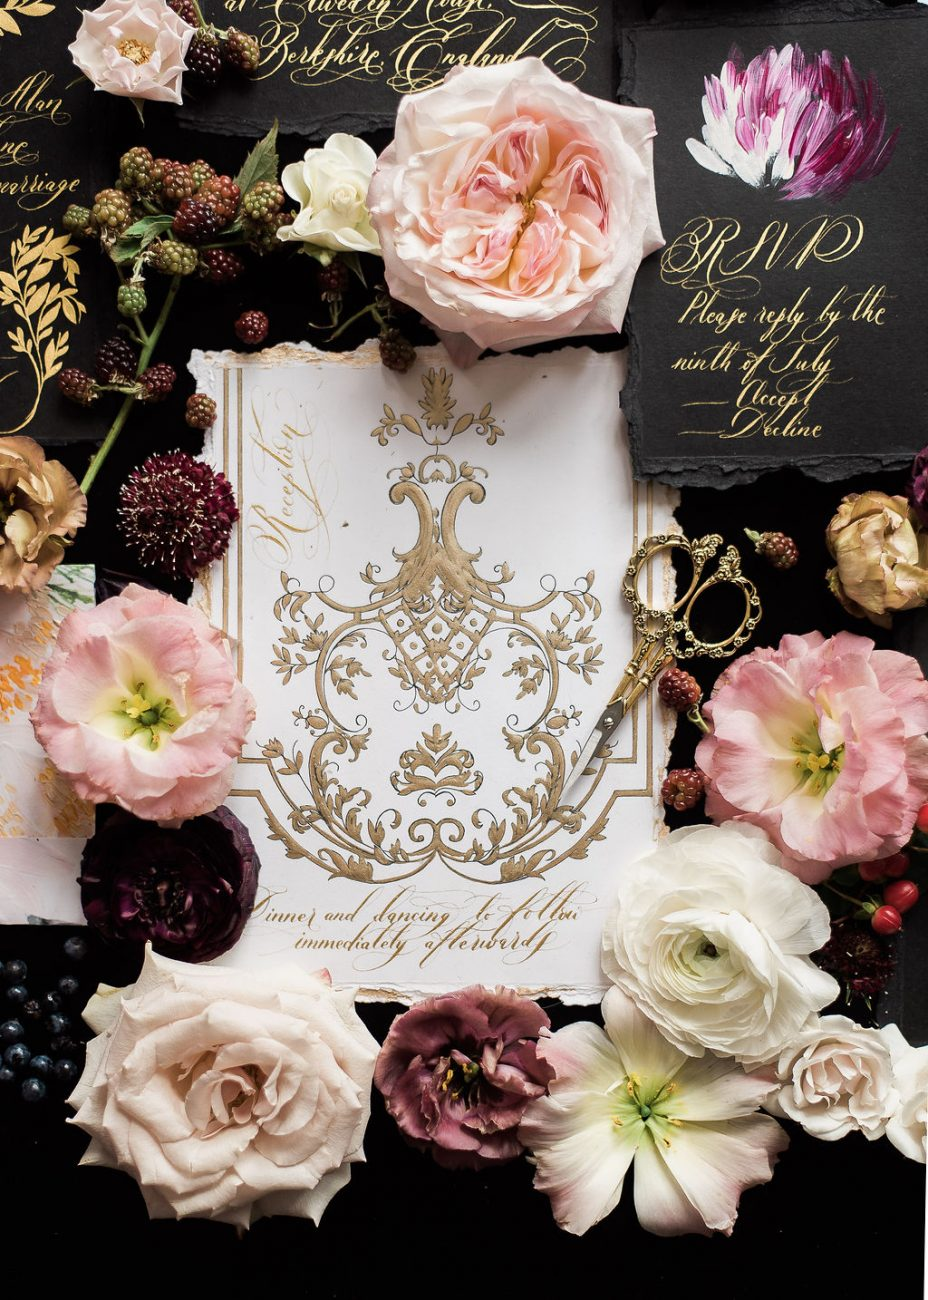 Reception card for a wedding or luxury event with white and gold hand painted details, perfect for an Italian wedding in Venice